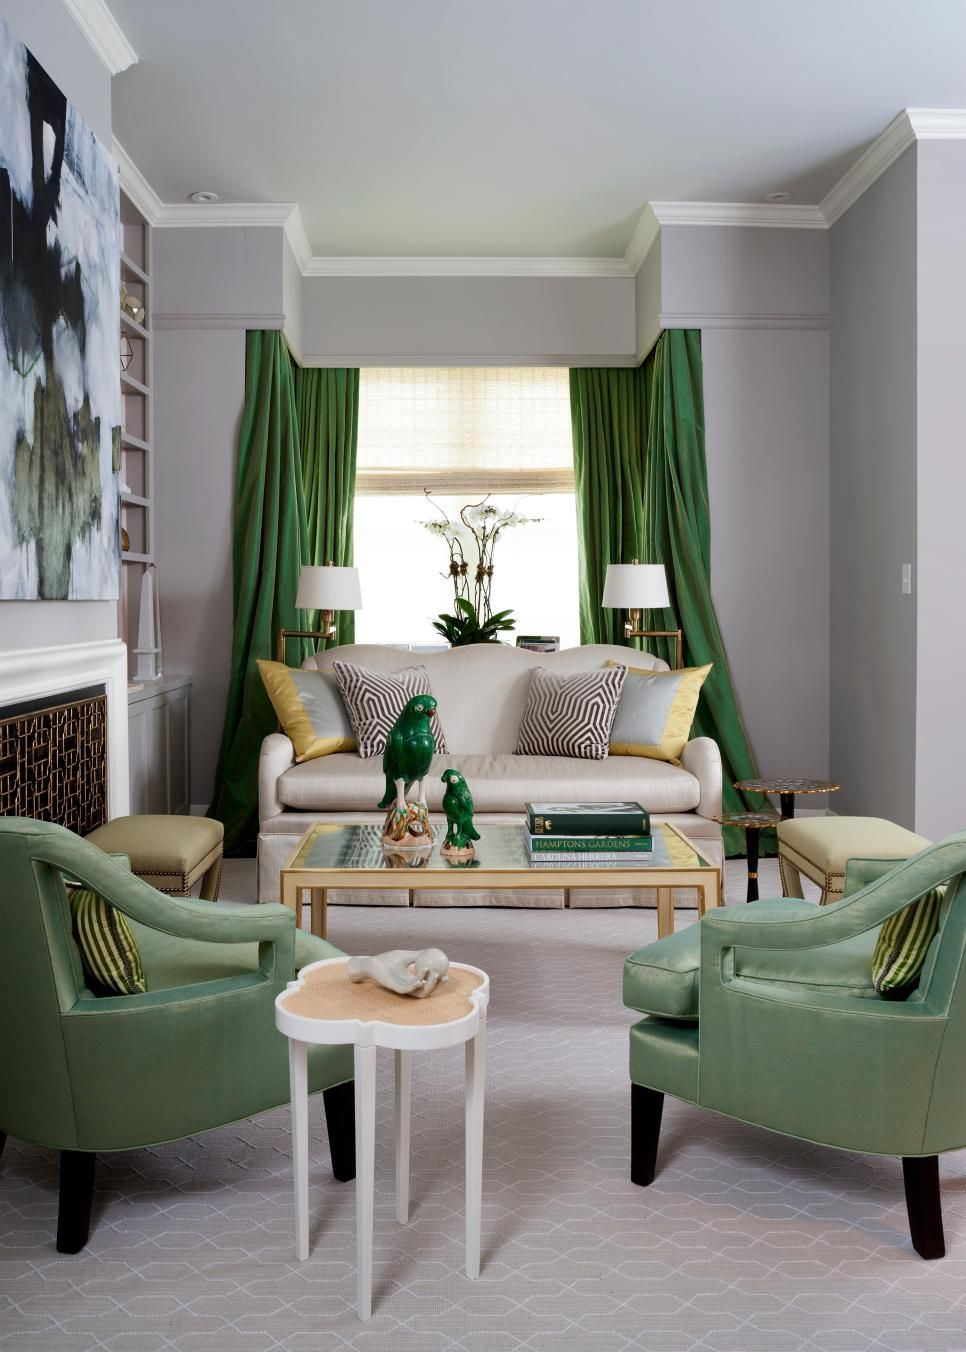 Transitional Living Room With Green Accents